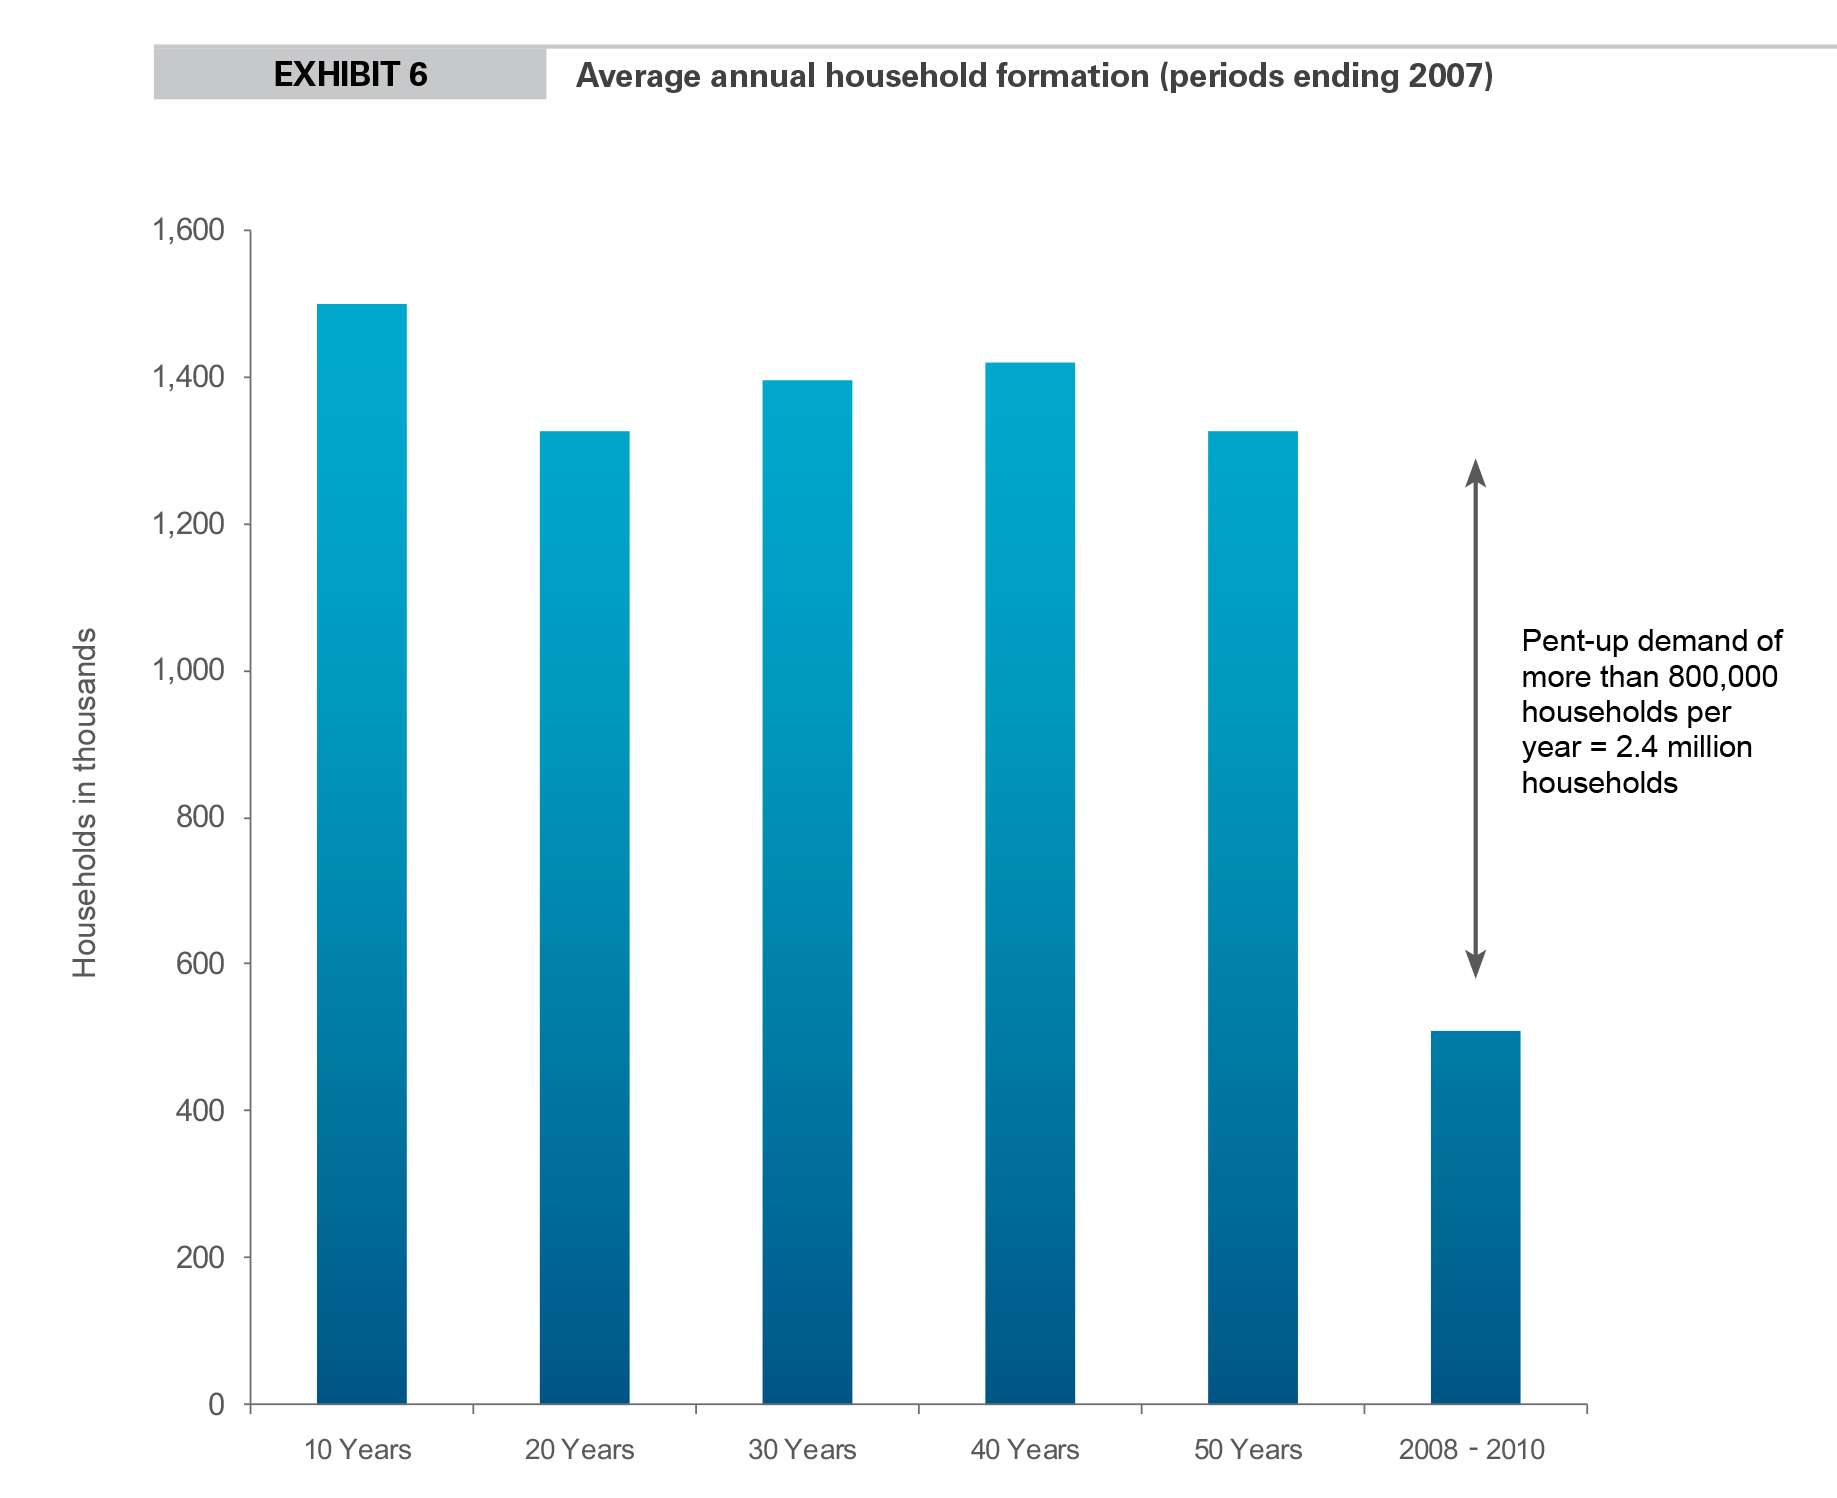 EXHIBIT 6 Average annual household formation (periods ending 2007)